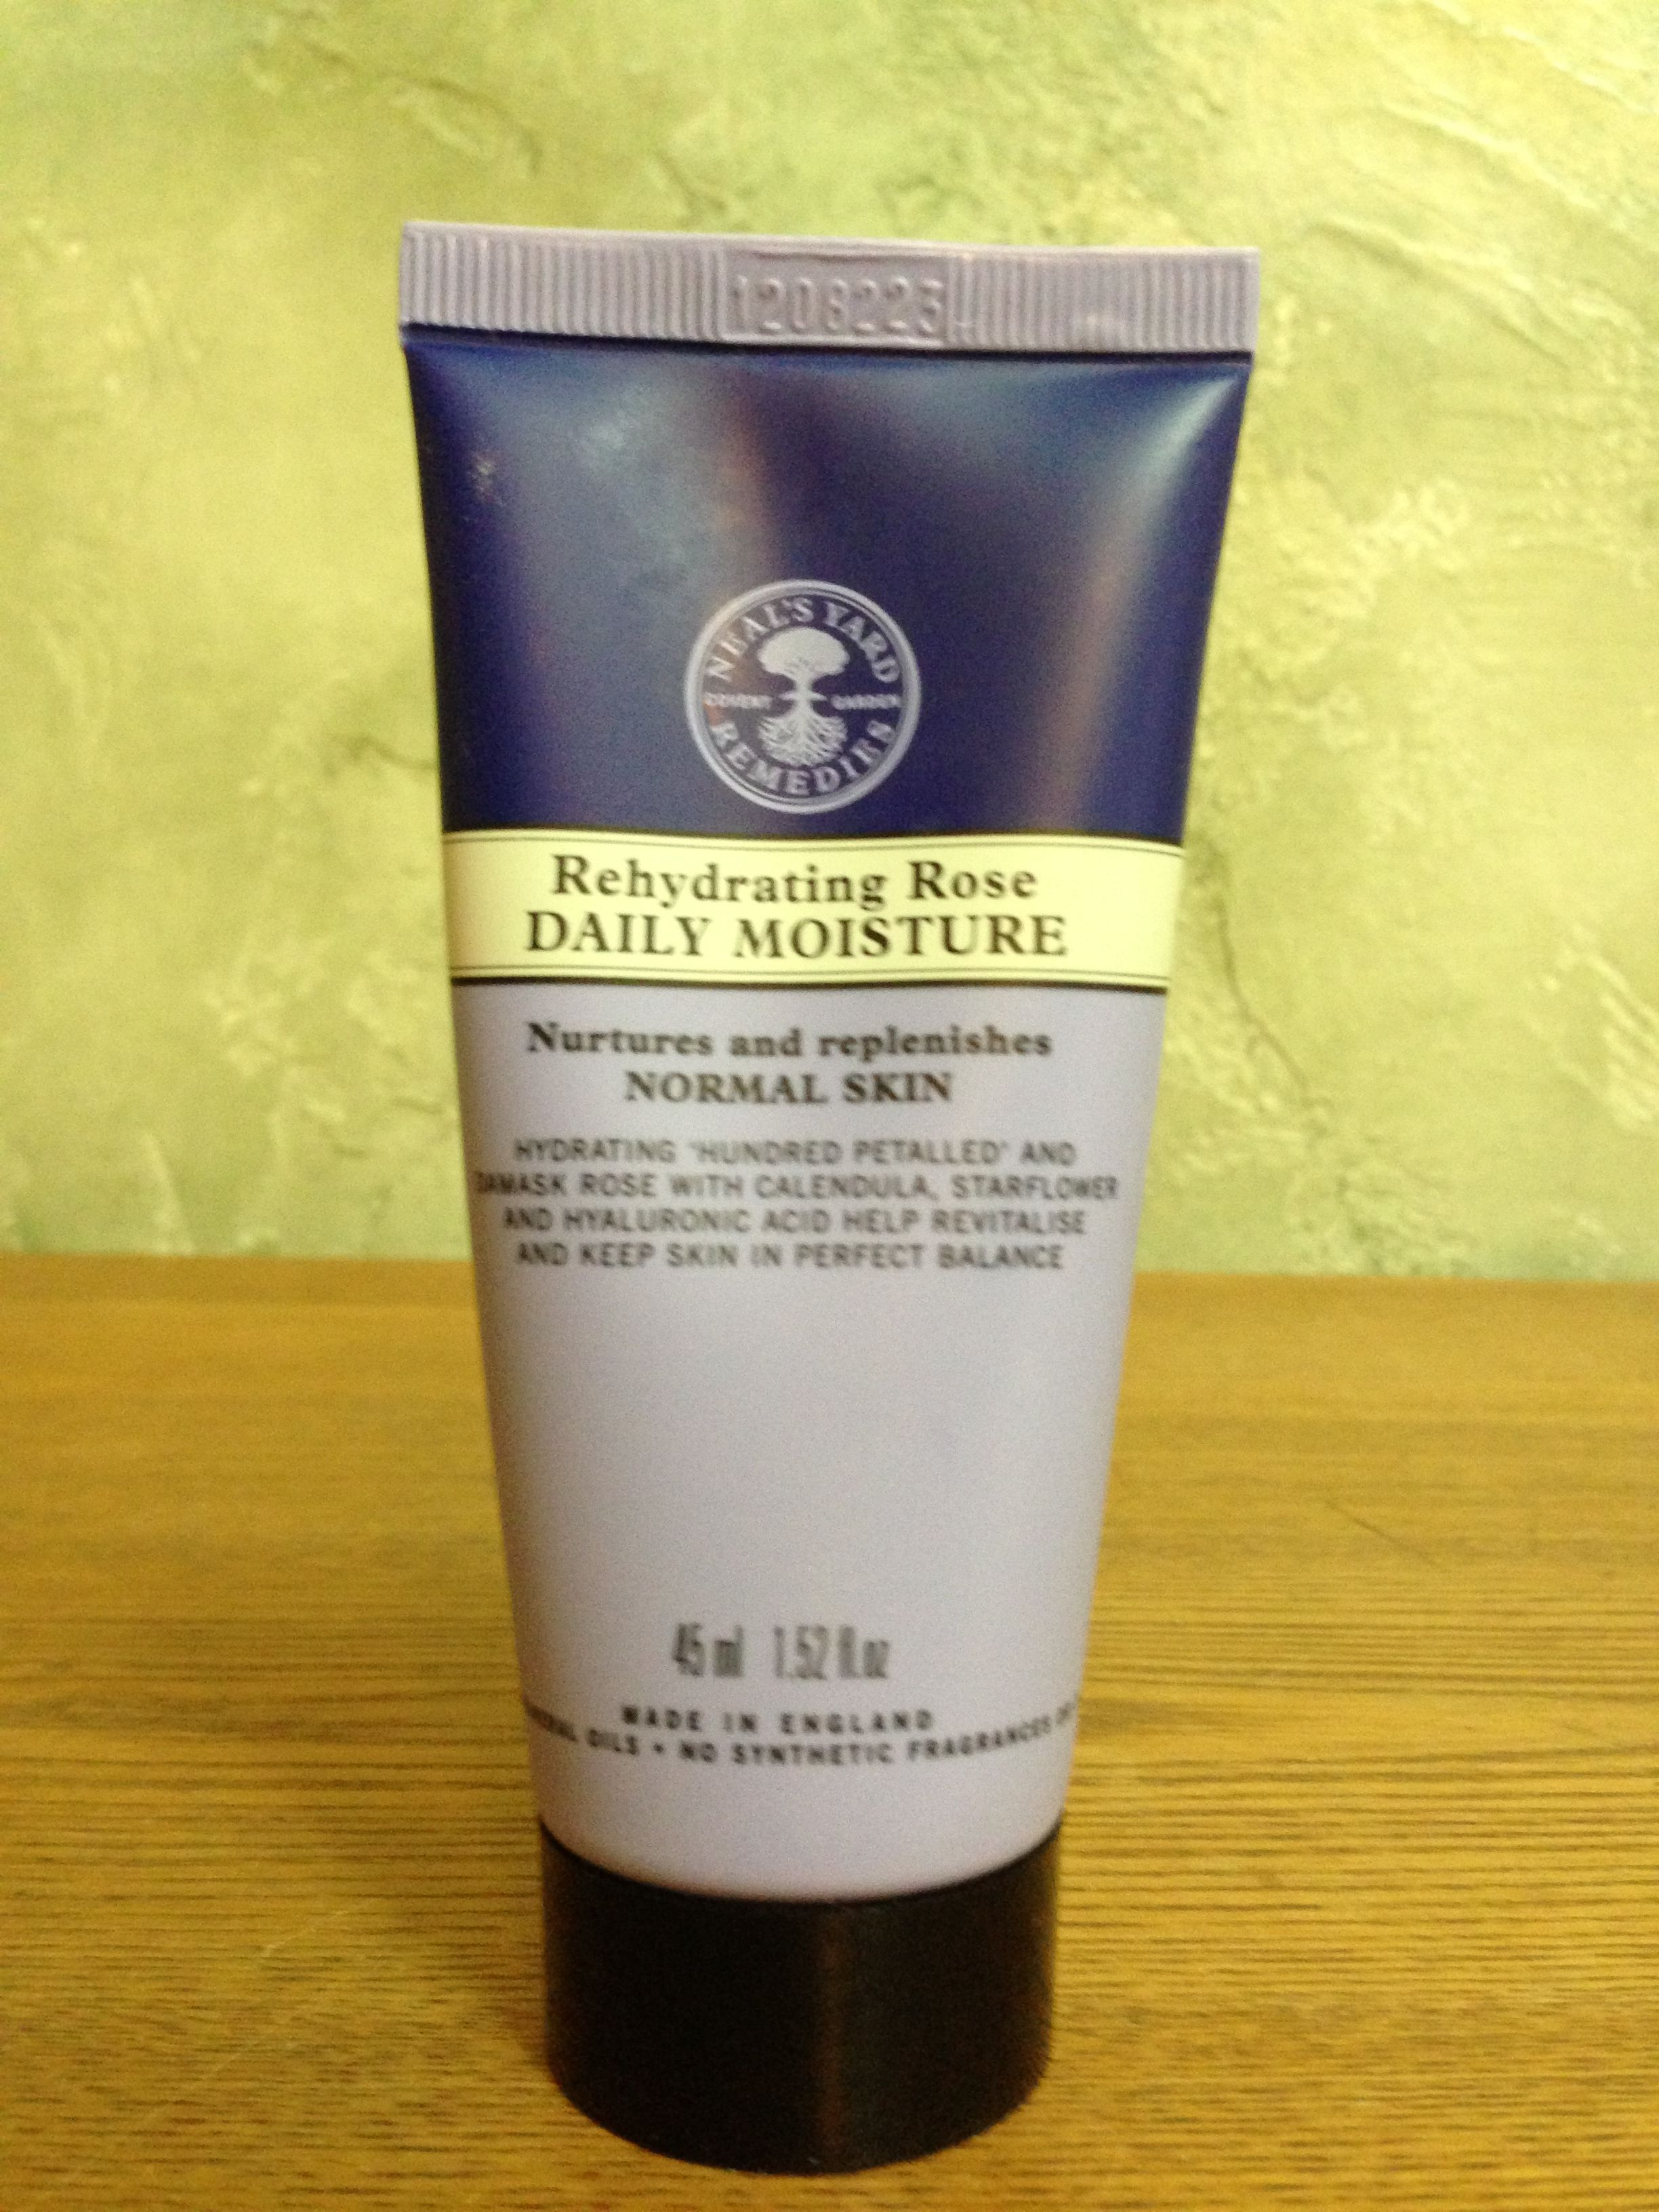 NYR Organic Rehydrating Rose Daily Moisture, this smells similar & better than Avon's Roses Roses that my grandma used to wear. Makes my skin silky smooth too:)